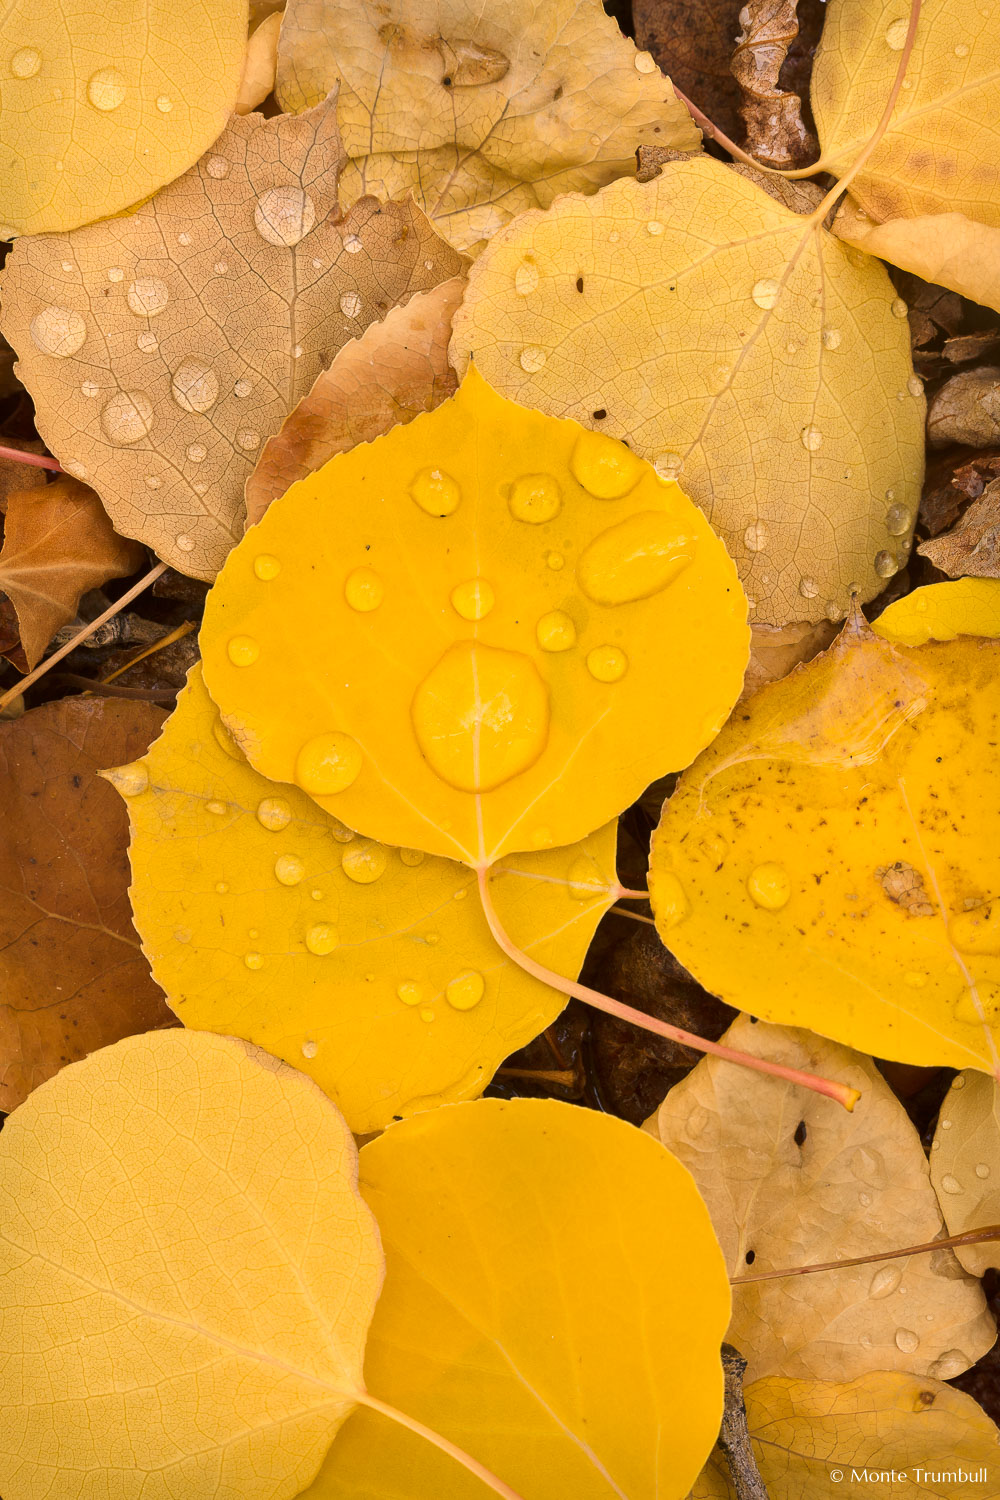 MT-20111005-122831-0101-Colorado-golden-aspen-leaves-water-drops.jpg